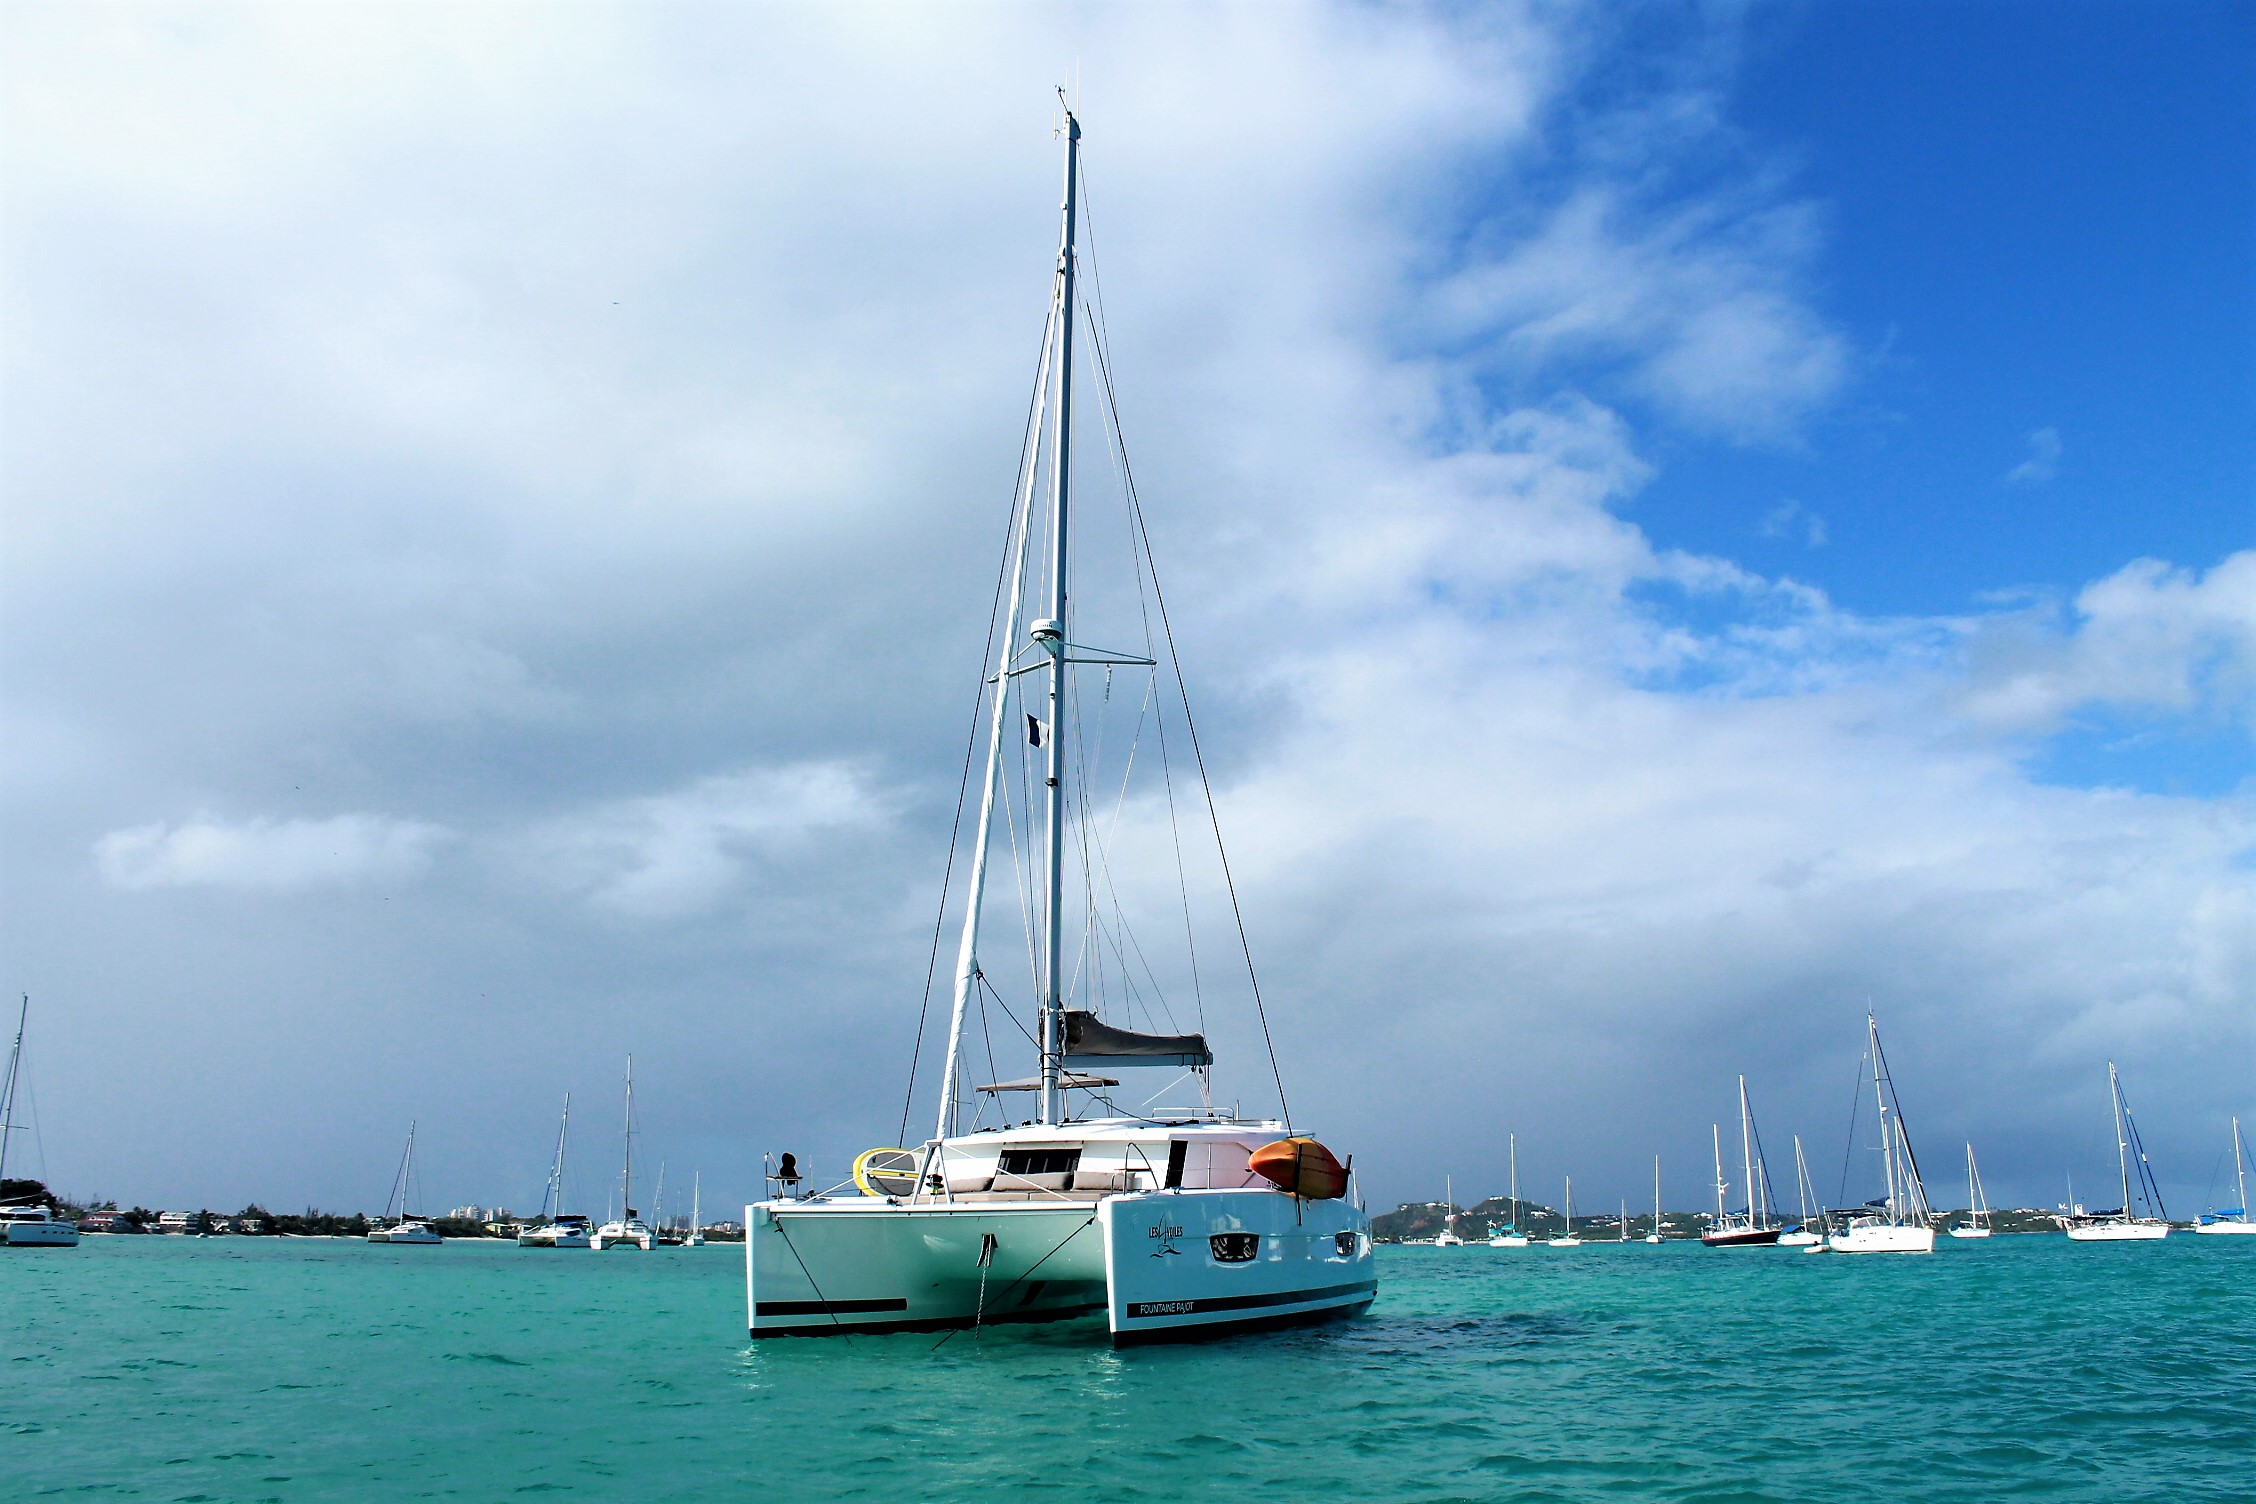 Fountaine Pajot Lucia 40 Sailing On Two Hulls Just Became